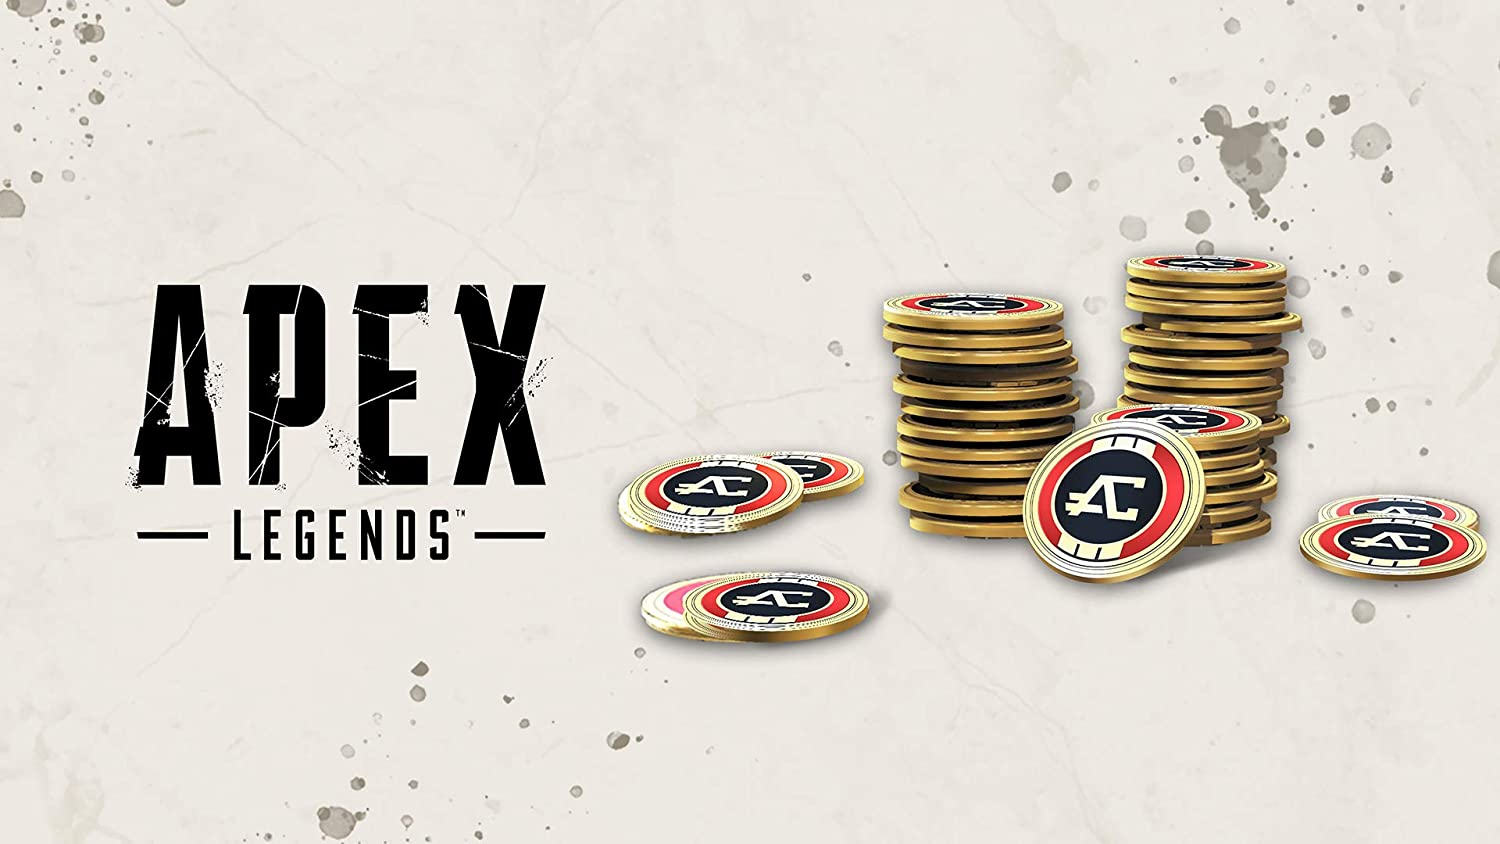 Apex Max 79% OFF Legends – 6 700 Switch Code Coins - Many popular brands Digital